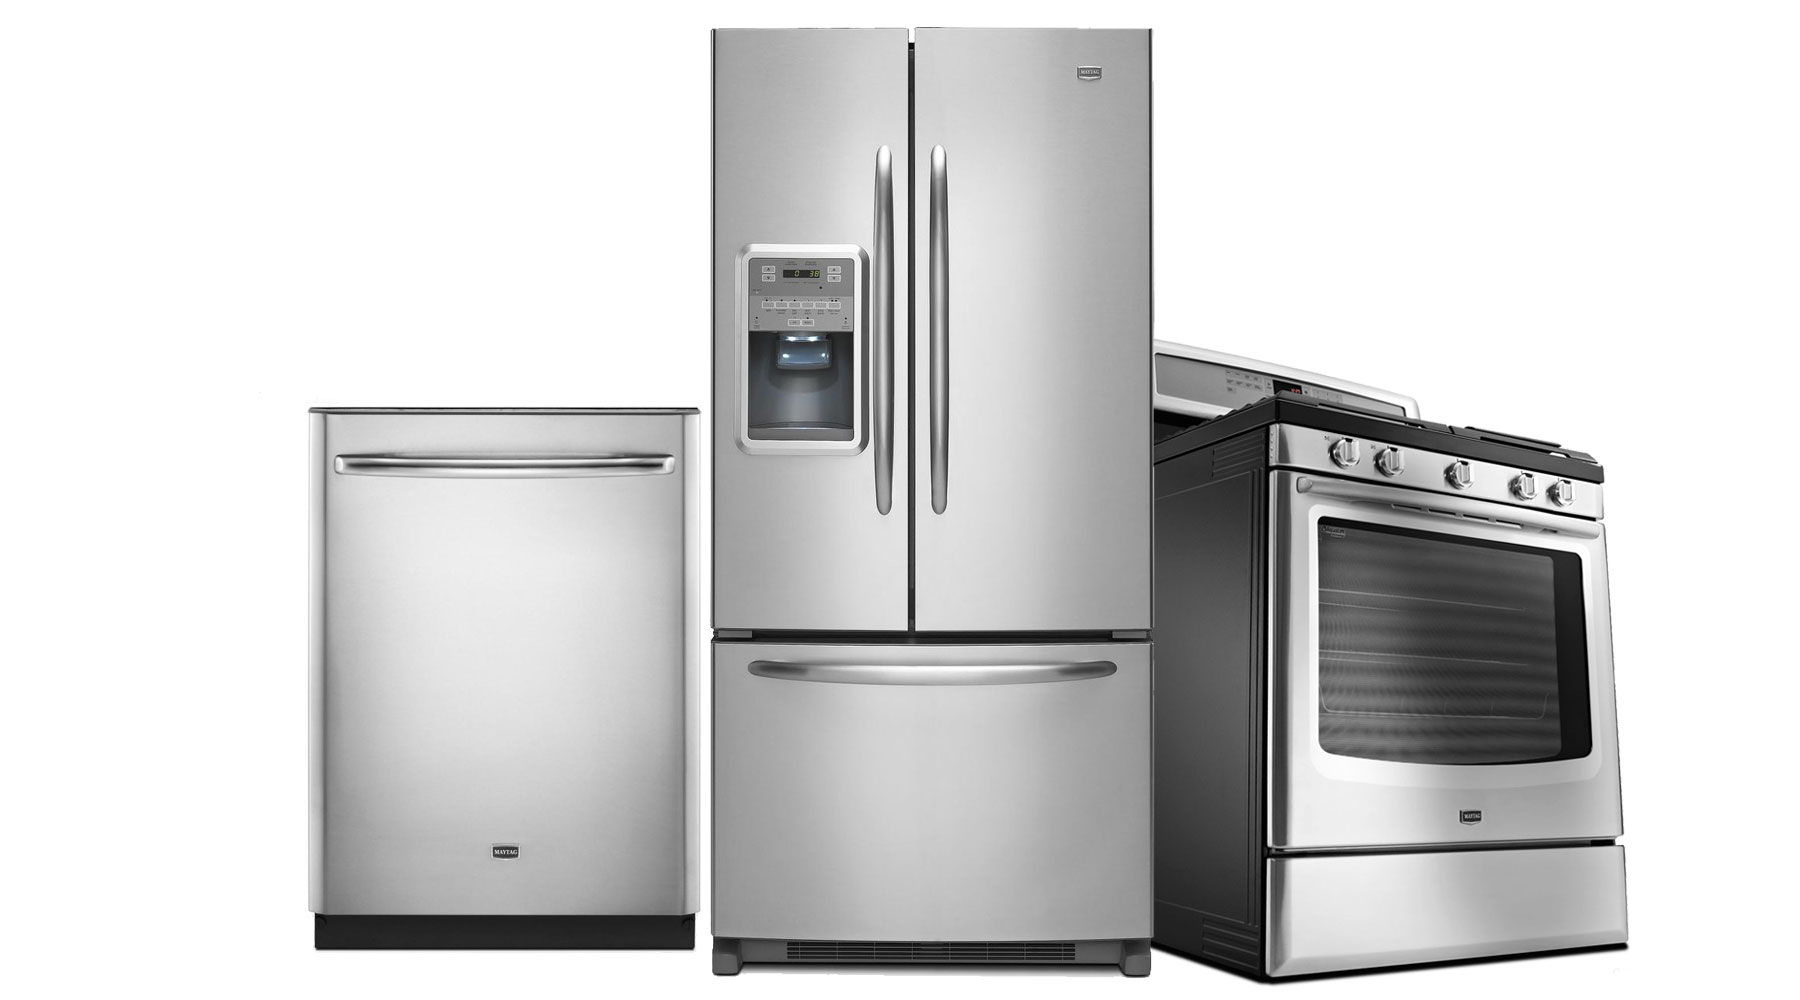 Product Review: Maytag Kitchen Appliances  Row House Reno